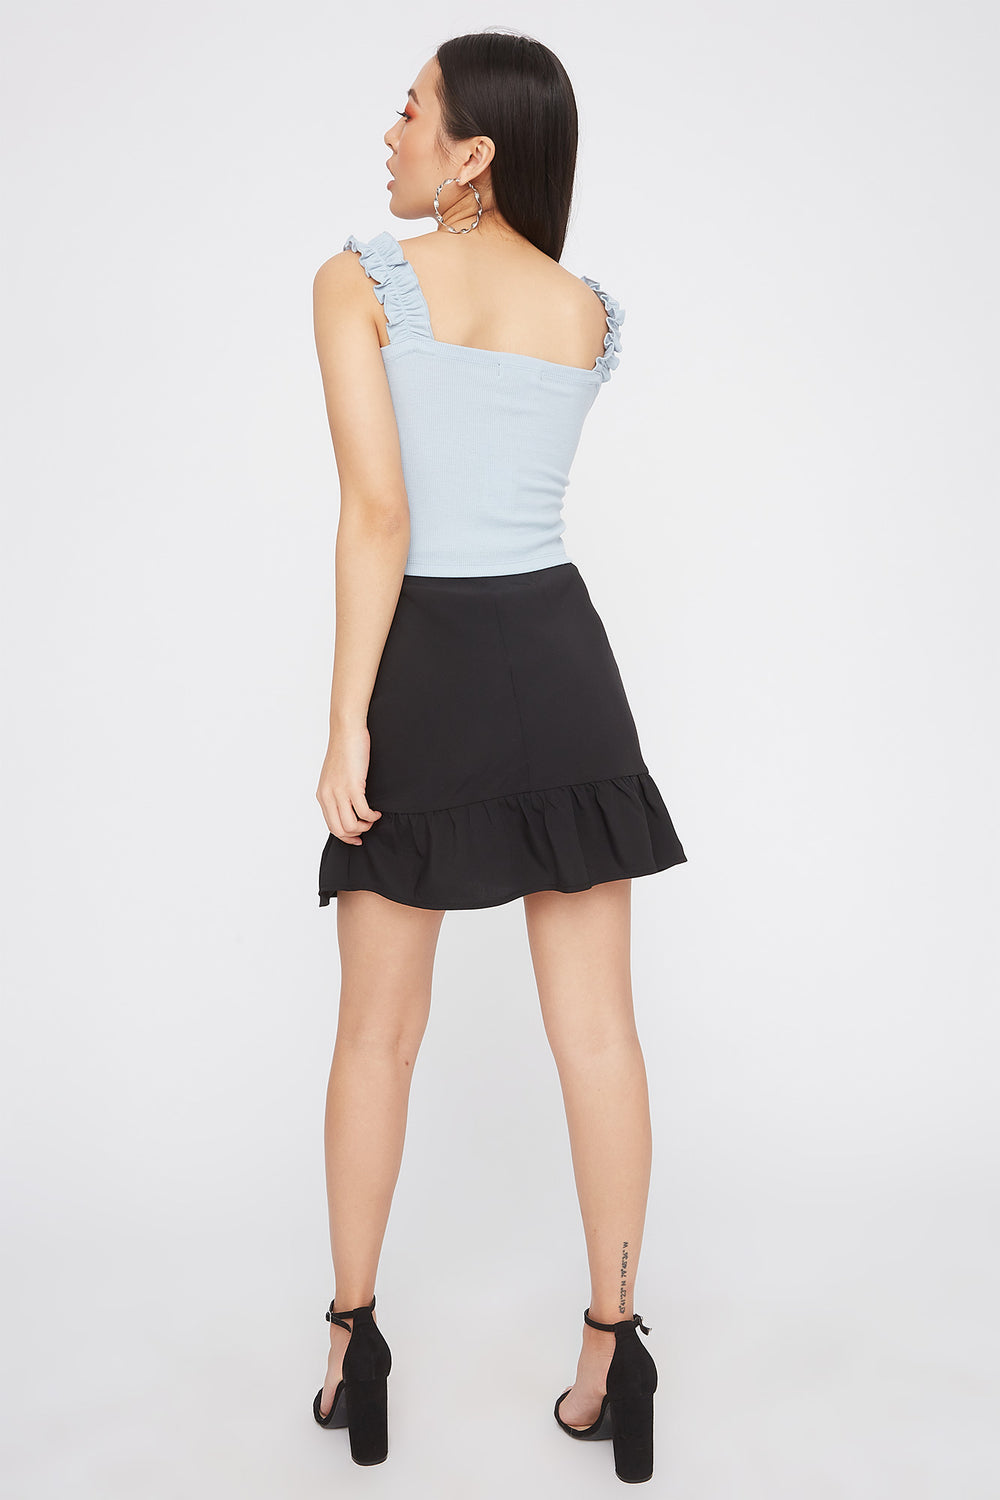 Ribbed Ruffle Strap Square Neck Tank Baby Blue